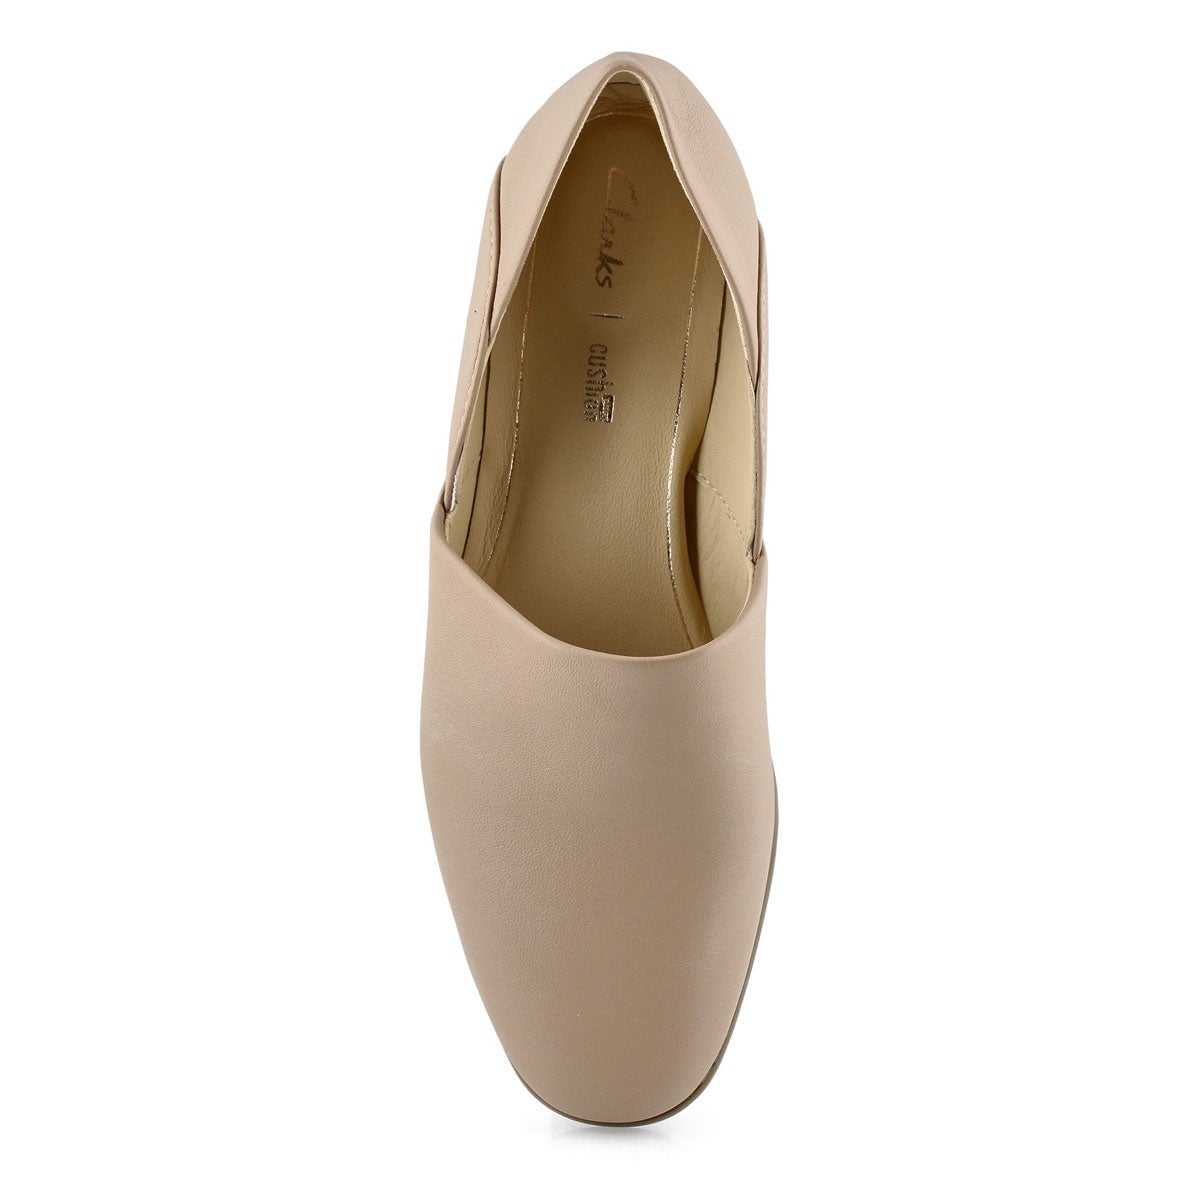 Women's Pure Tone Dress Loafer - Nude